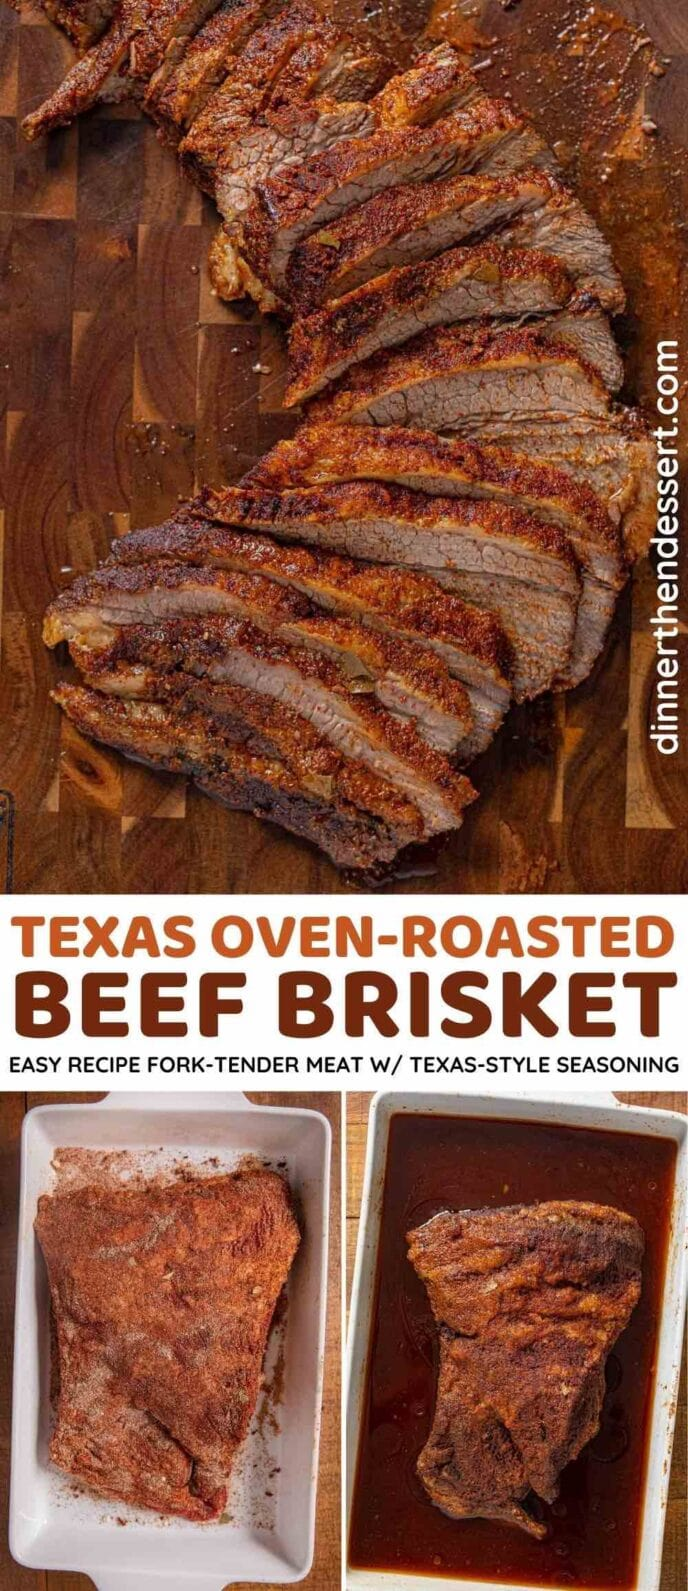 Texas Oven-Roasted Beef Brisket collage